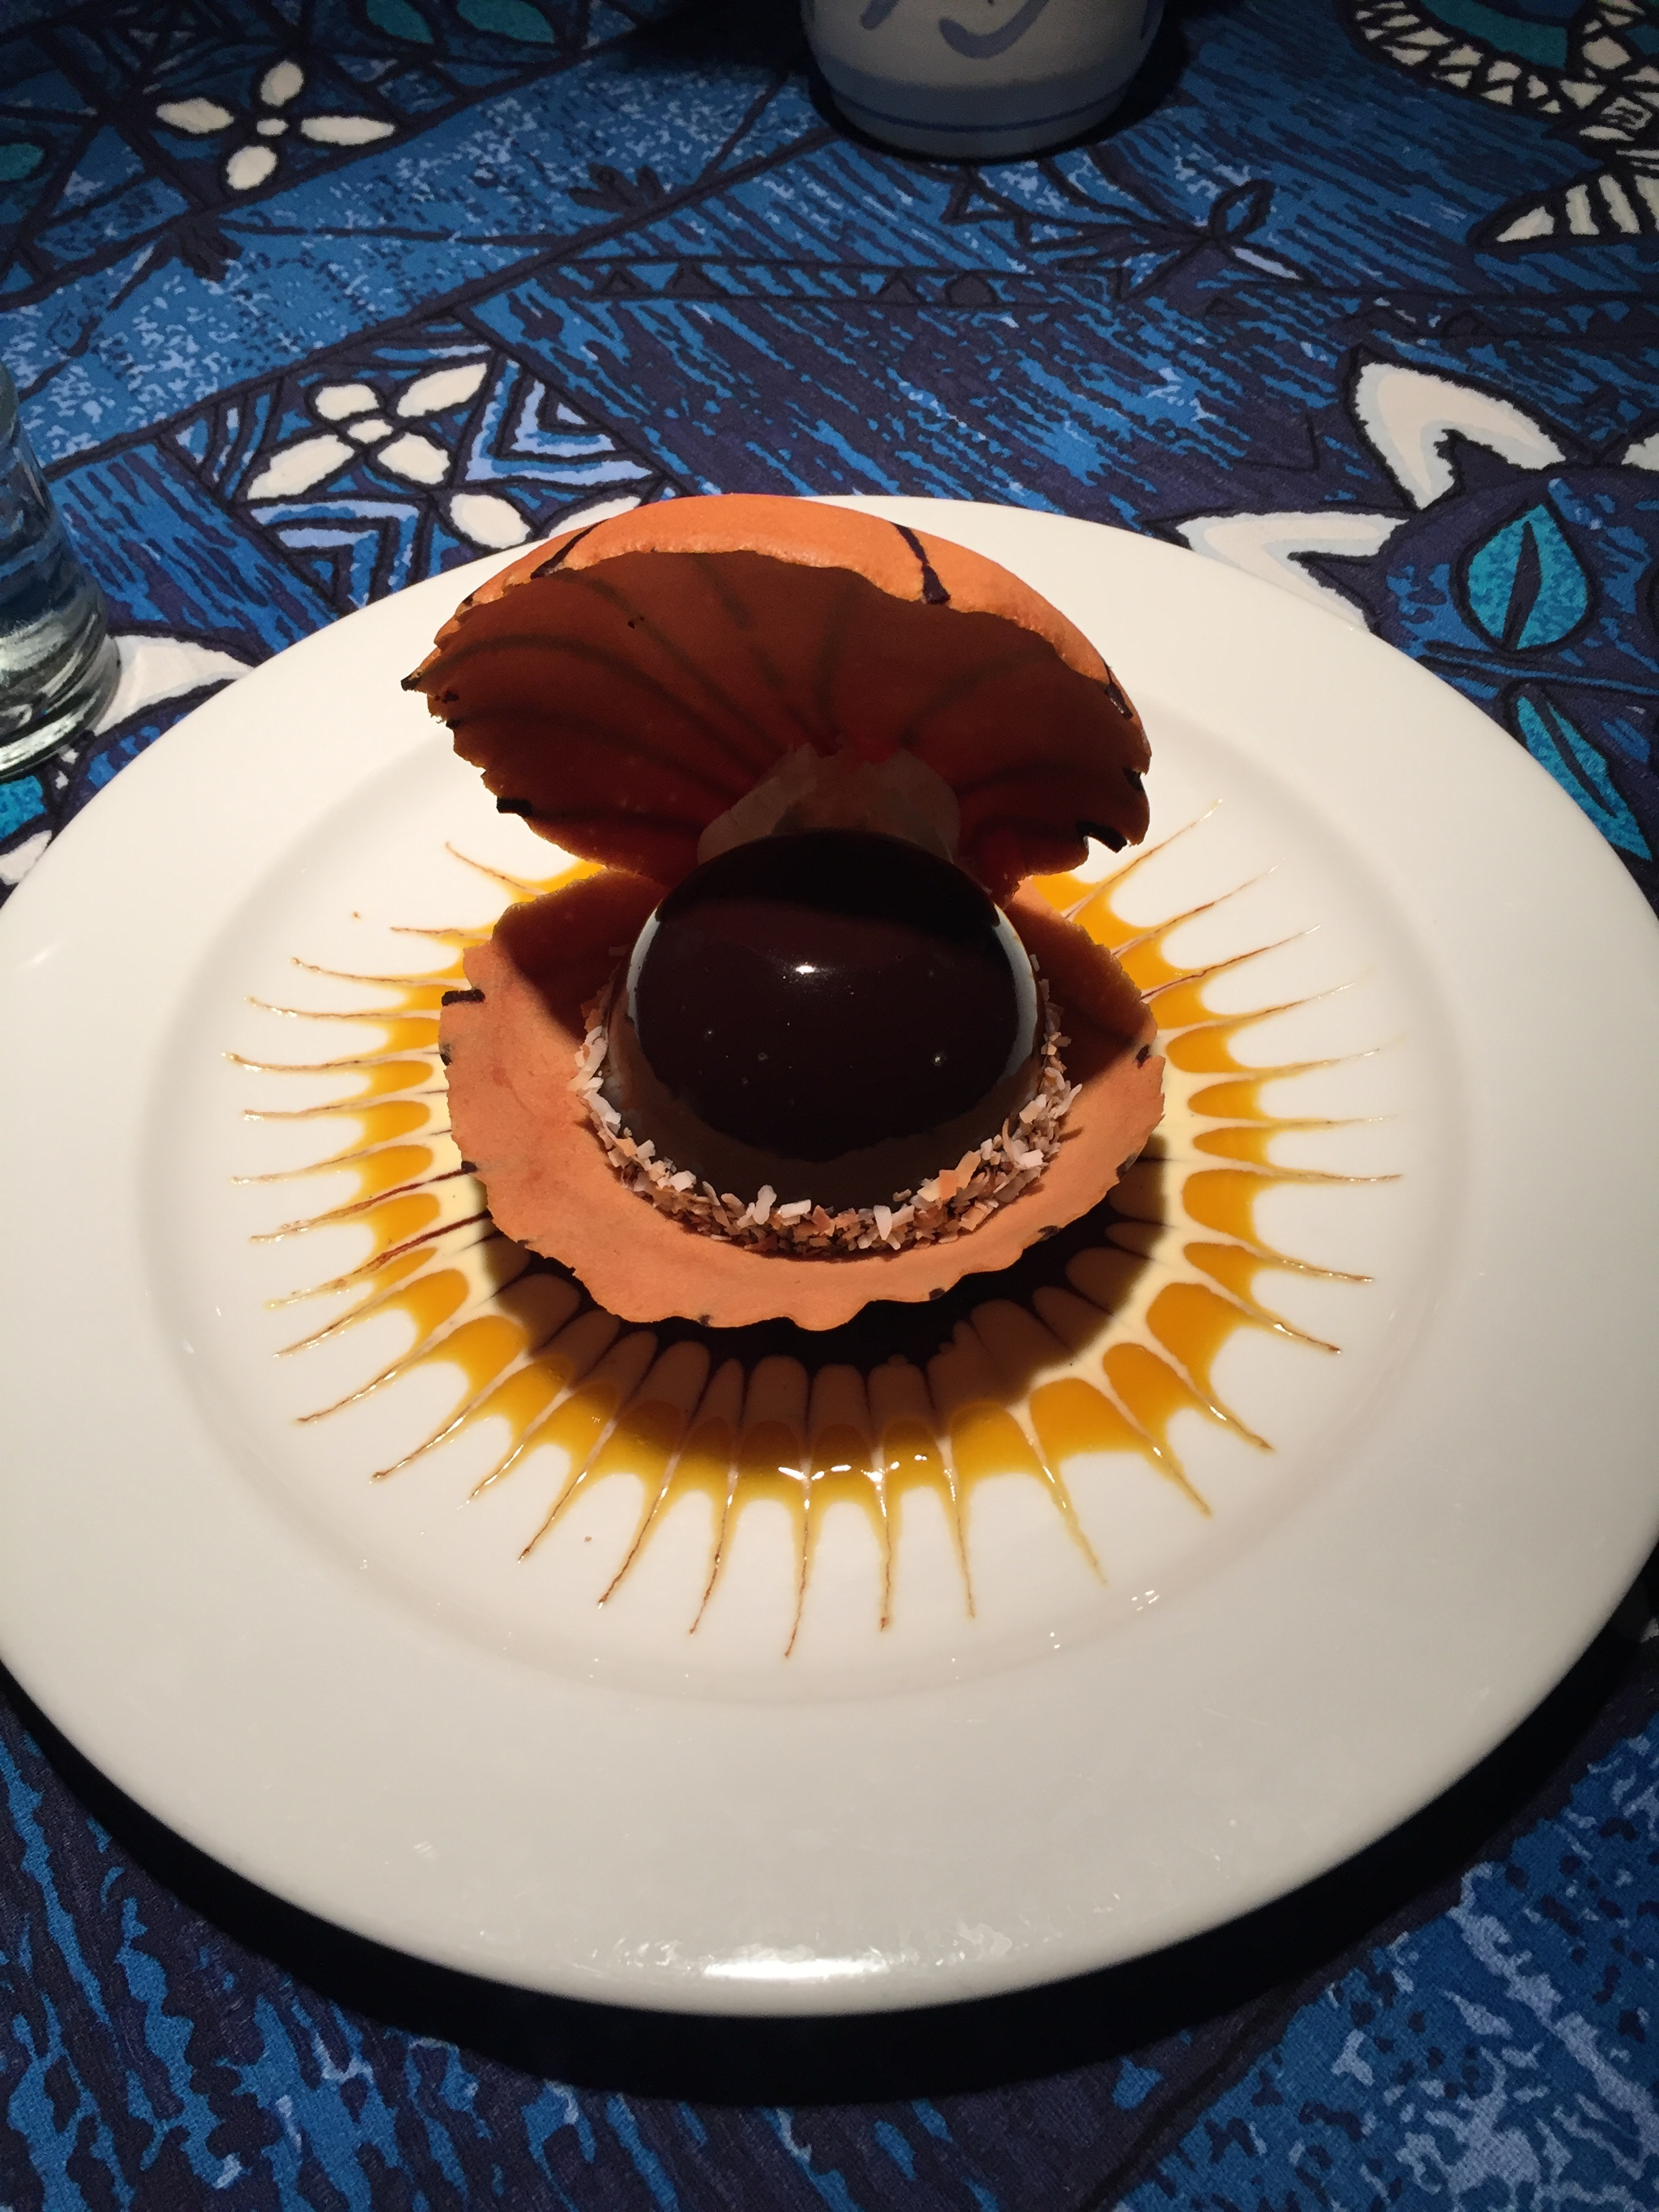 Polynesian Black Pearl: Liliko'i chocolate mousse in a pastry seashell. Every dessert should be this pretty! It wasn't too sickly either, a perfect balance between the mousse and what tasted kinda like a fortune cookie. The sauce on the plate was passionfruit (Liliko'i) which just so happens to be my favourite flavour, it took great restraint to not lick the plate.